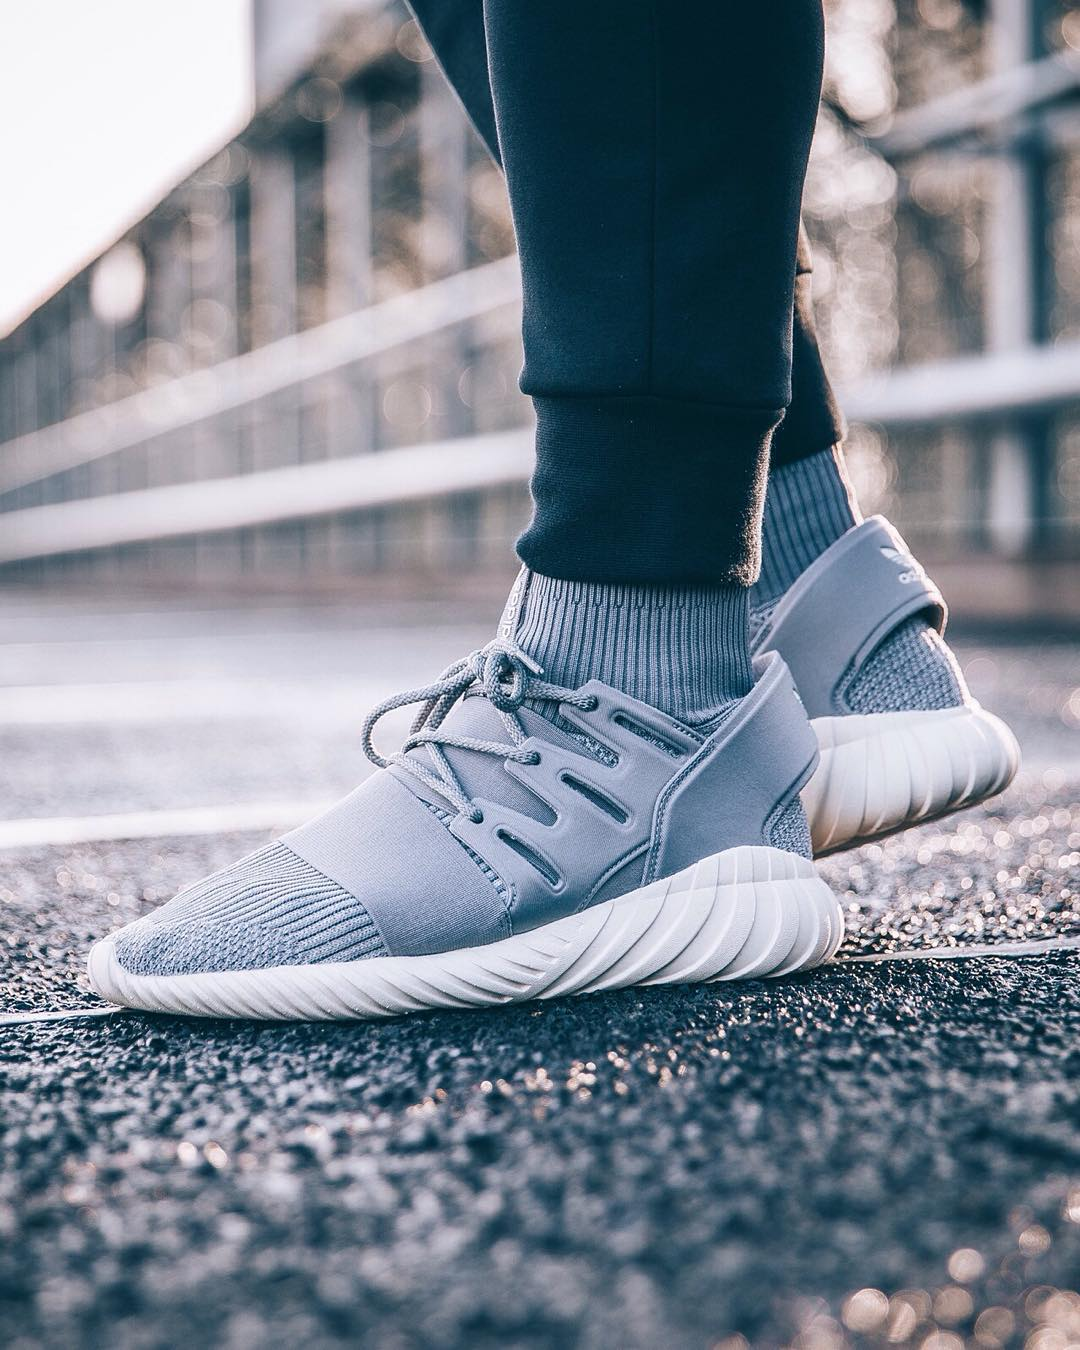 Grey Black Friday Tubular Doom Sock $50 to $100 Cheap Adidas US